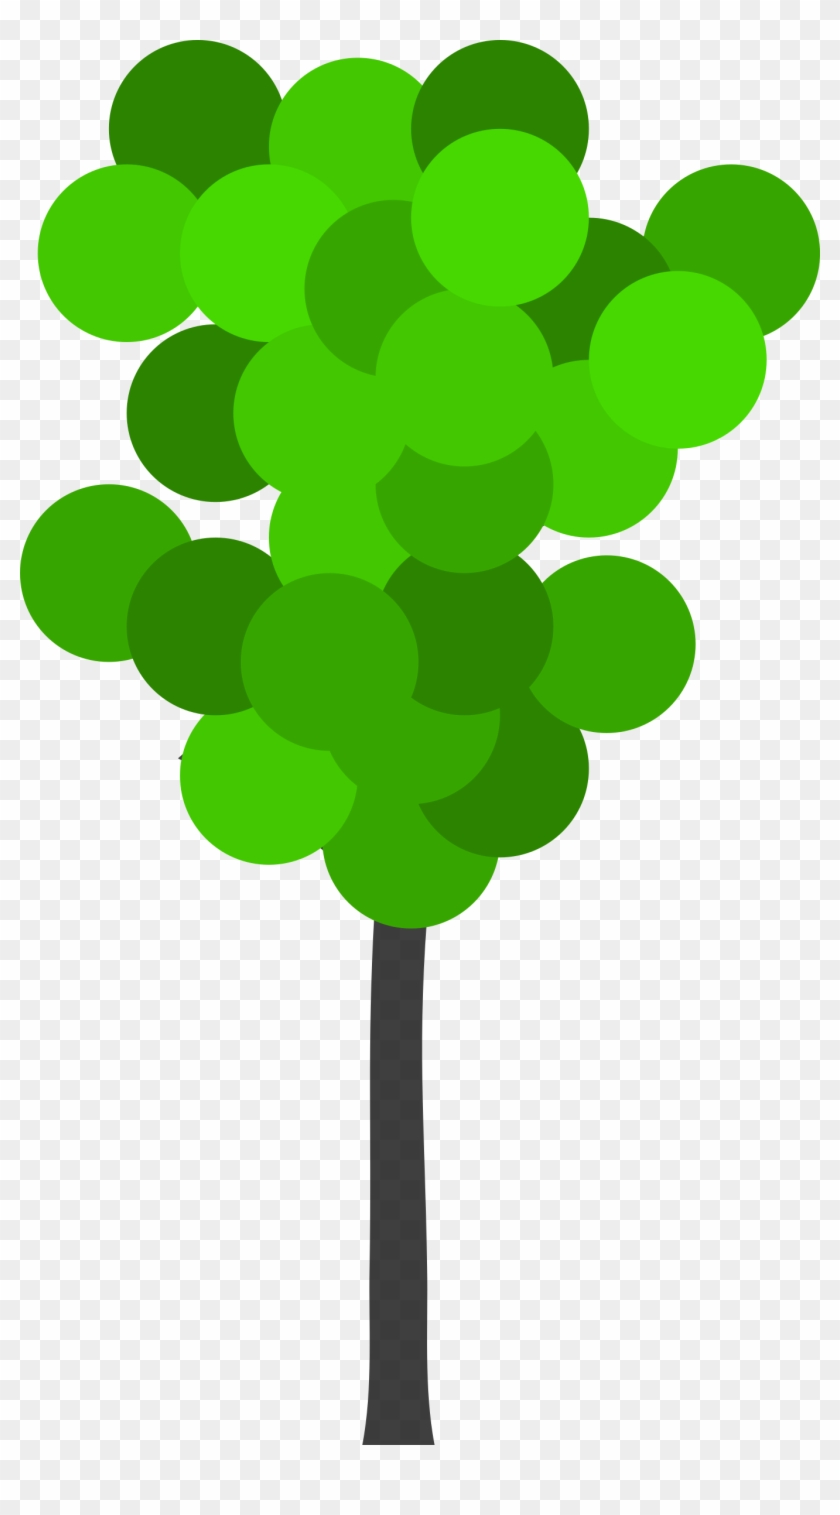 Big Image - Cartoon Tree Hi Png #30610